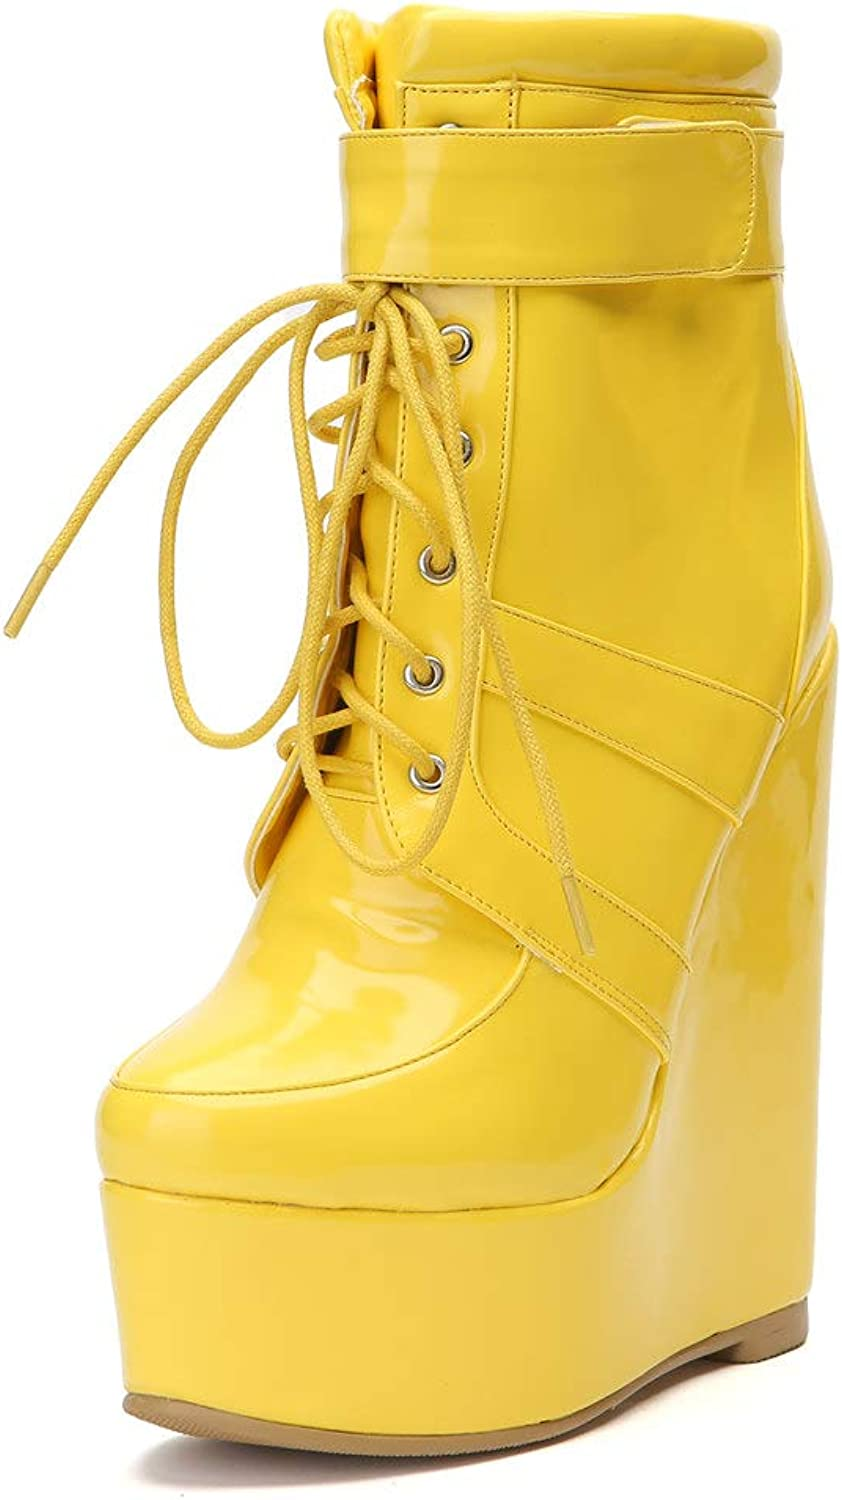 Original Intention Sexy Woman Ankle Boots Platform Round Toe Wedges Boots Yellow shoes Woman